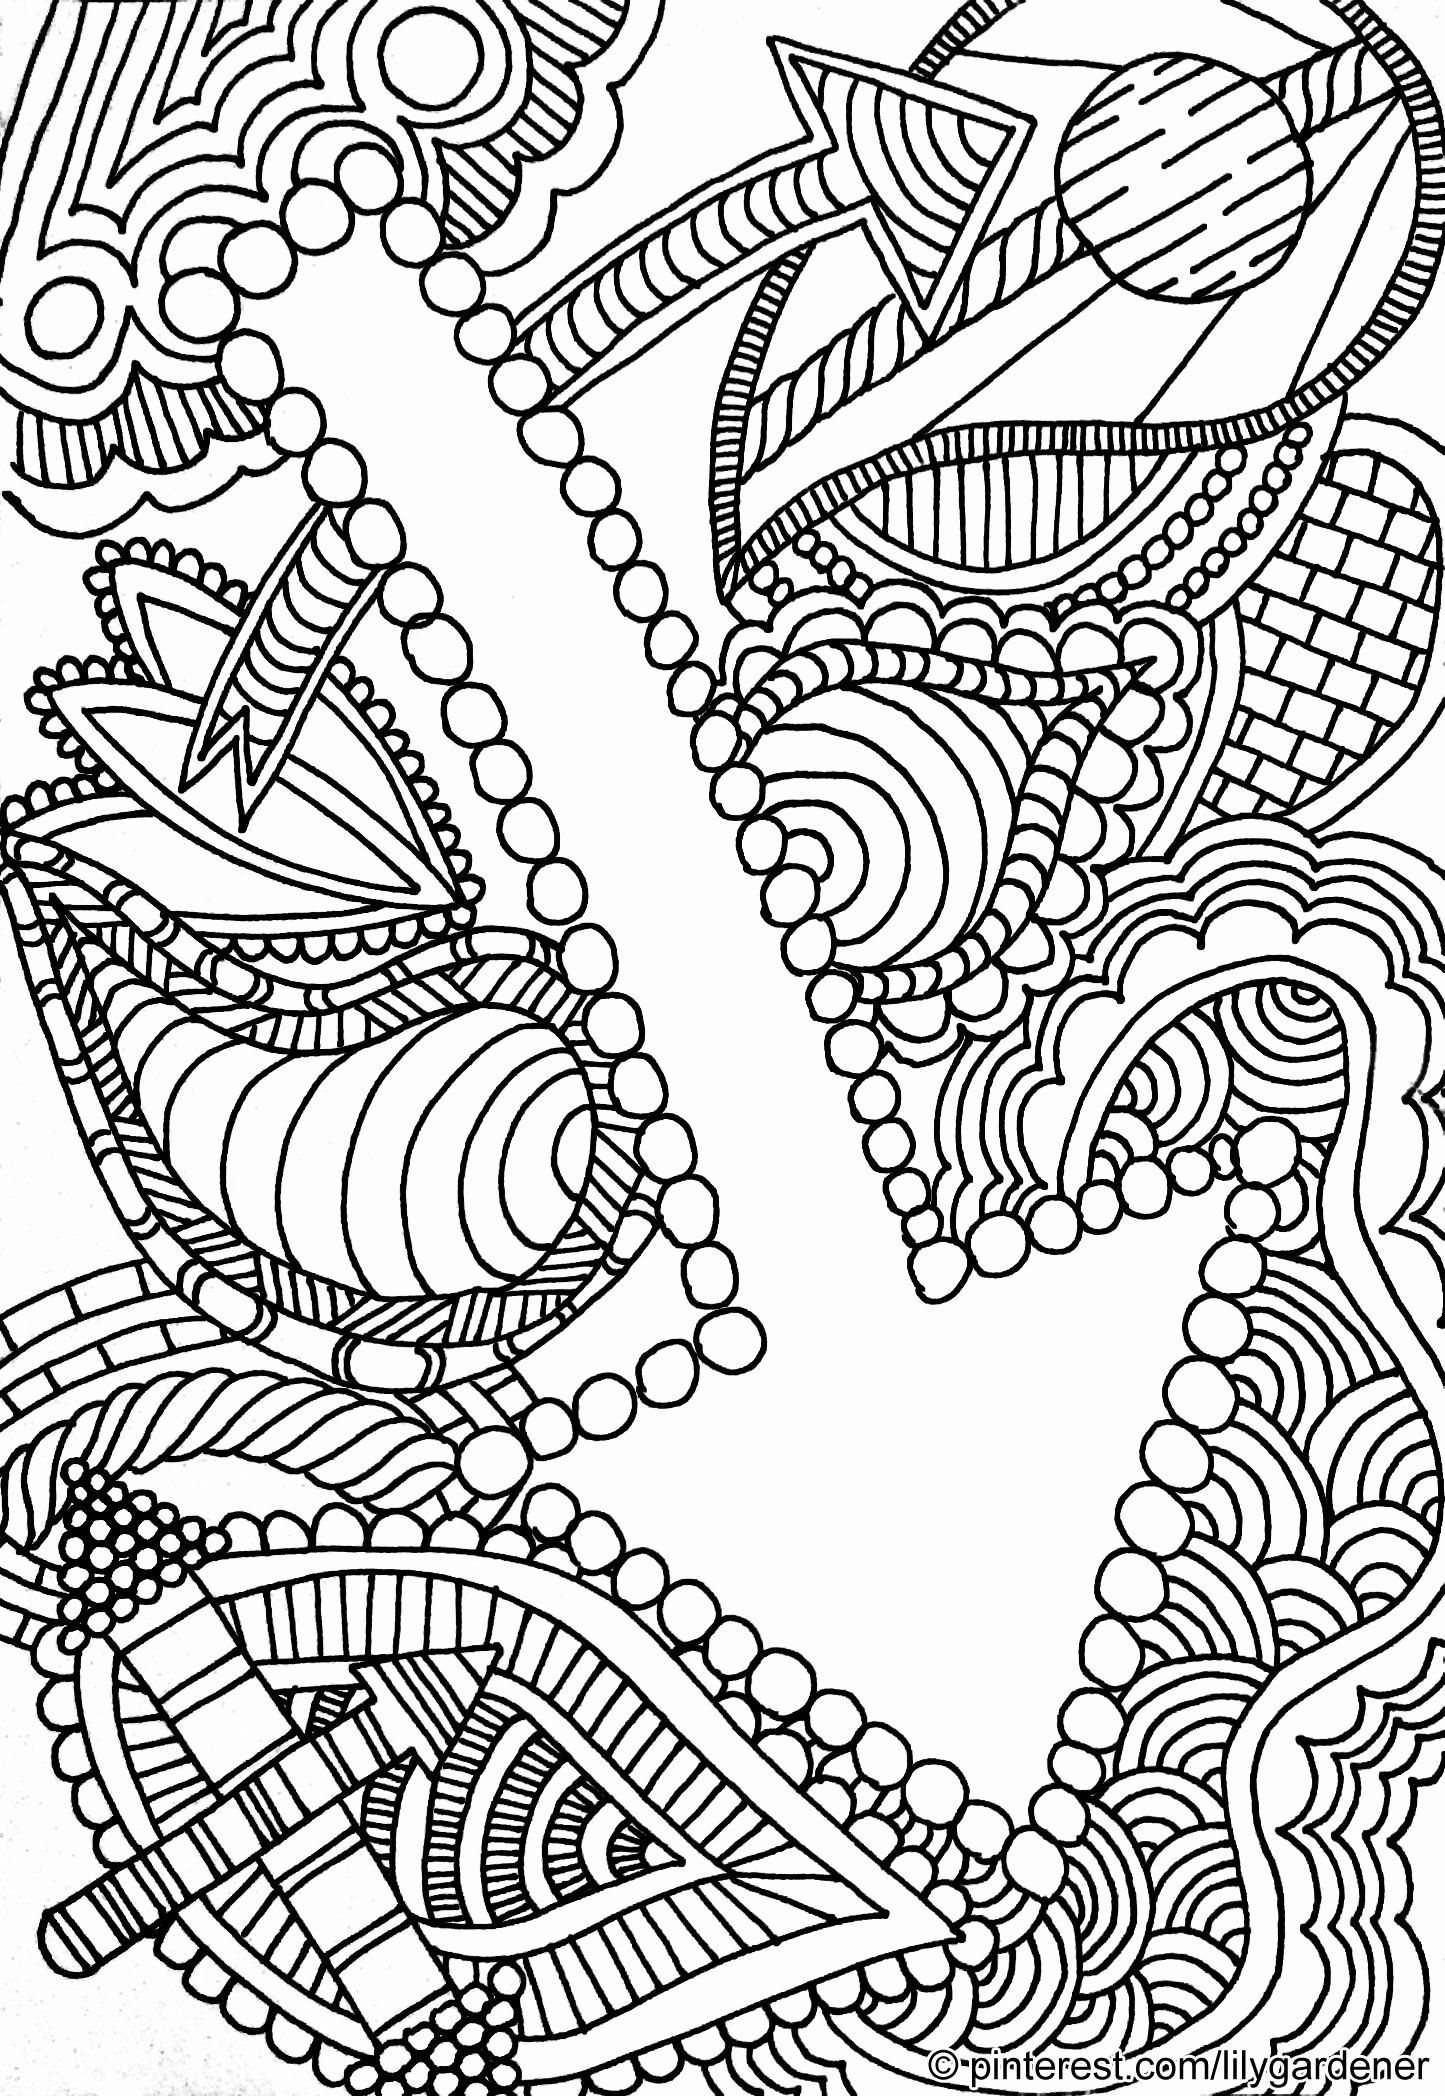 Coast Guard Coloring Sheets For Toddlers Free Online Mason Jar ... | 2096x1445